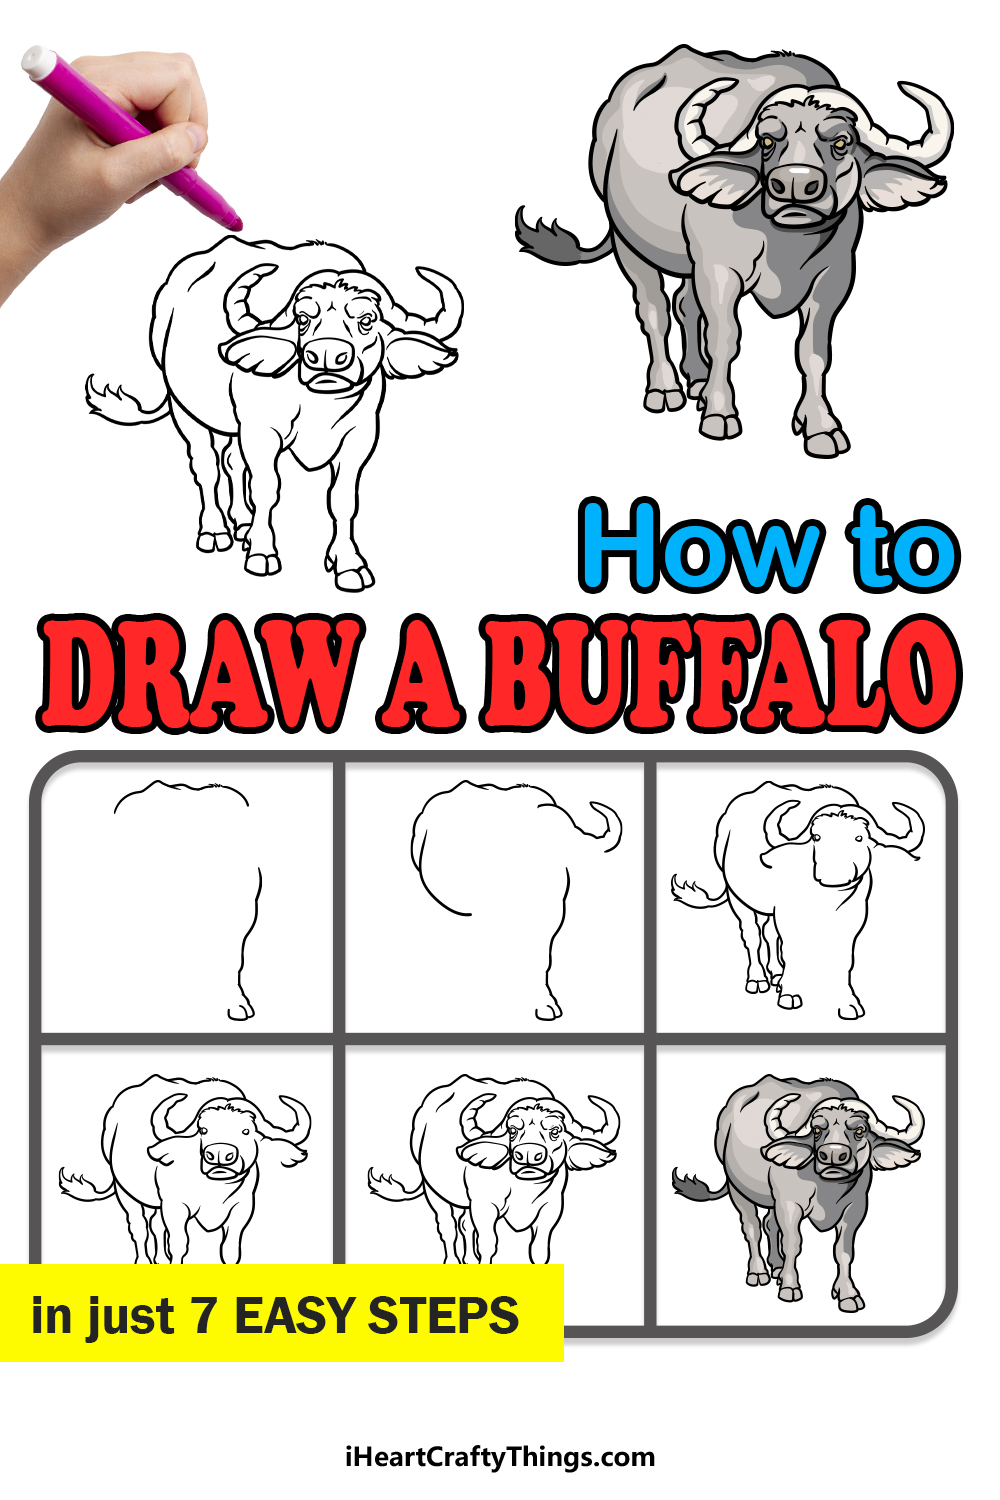 how to draw a buffalo in 7 easy steps